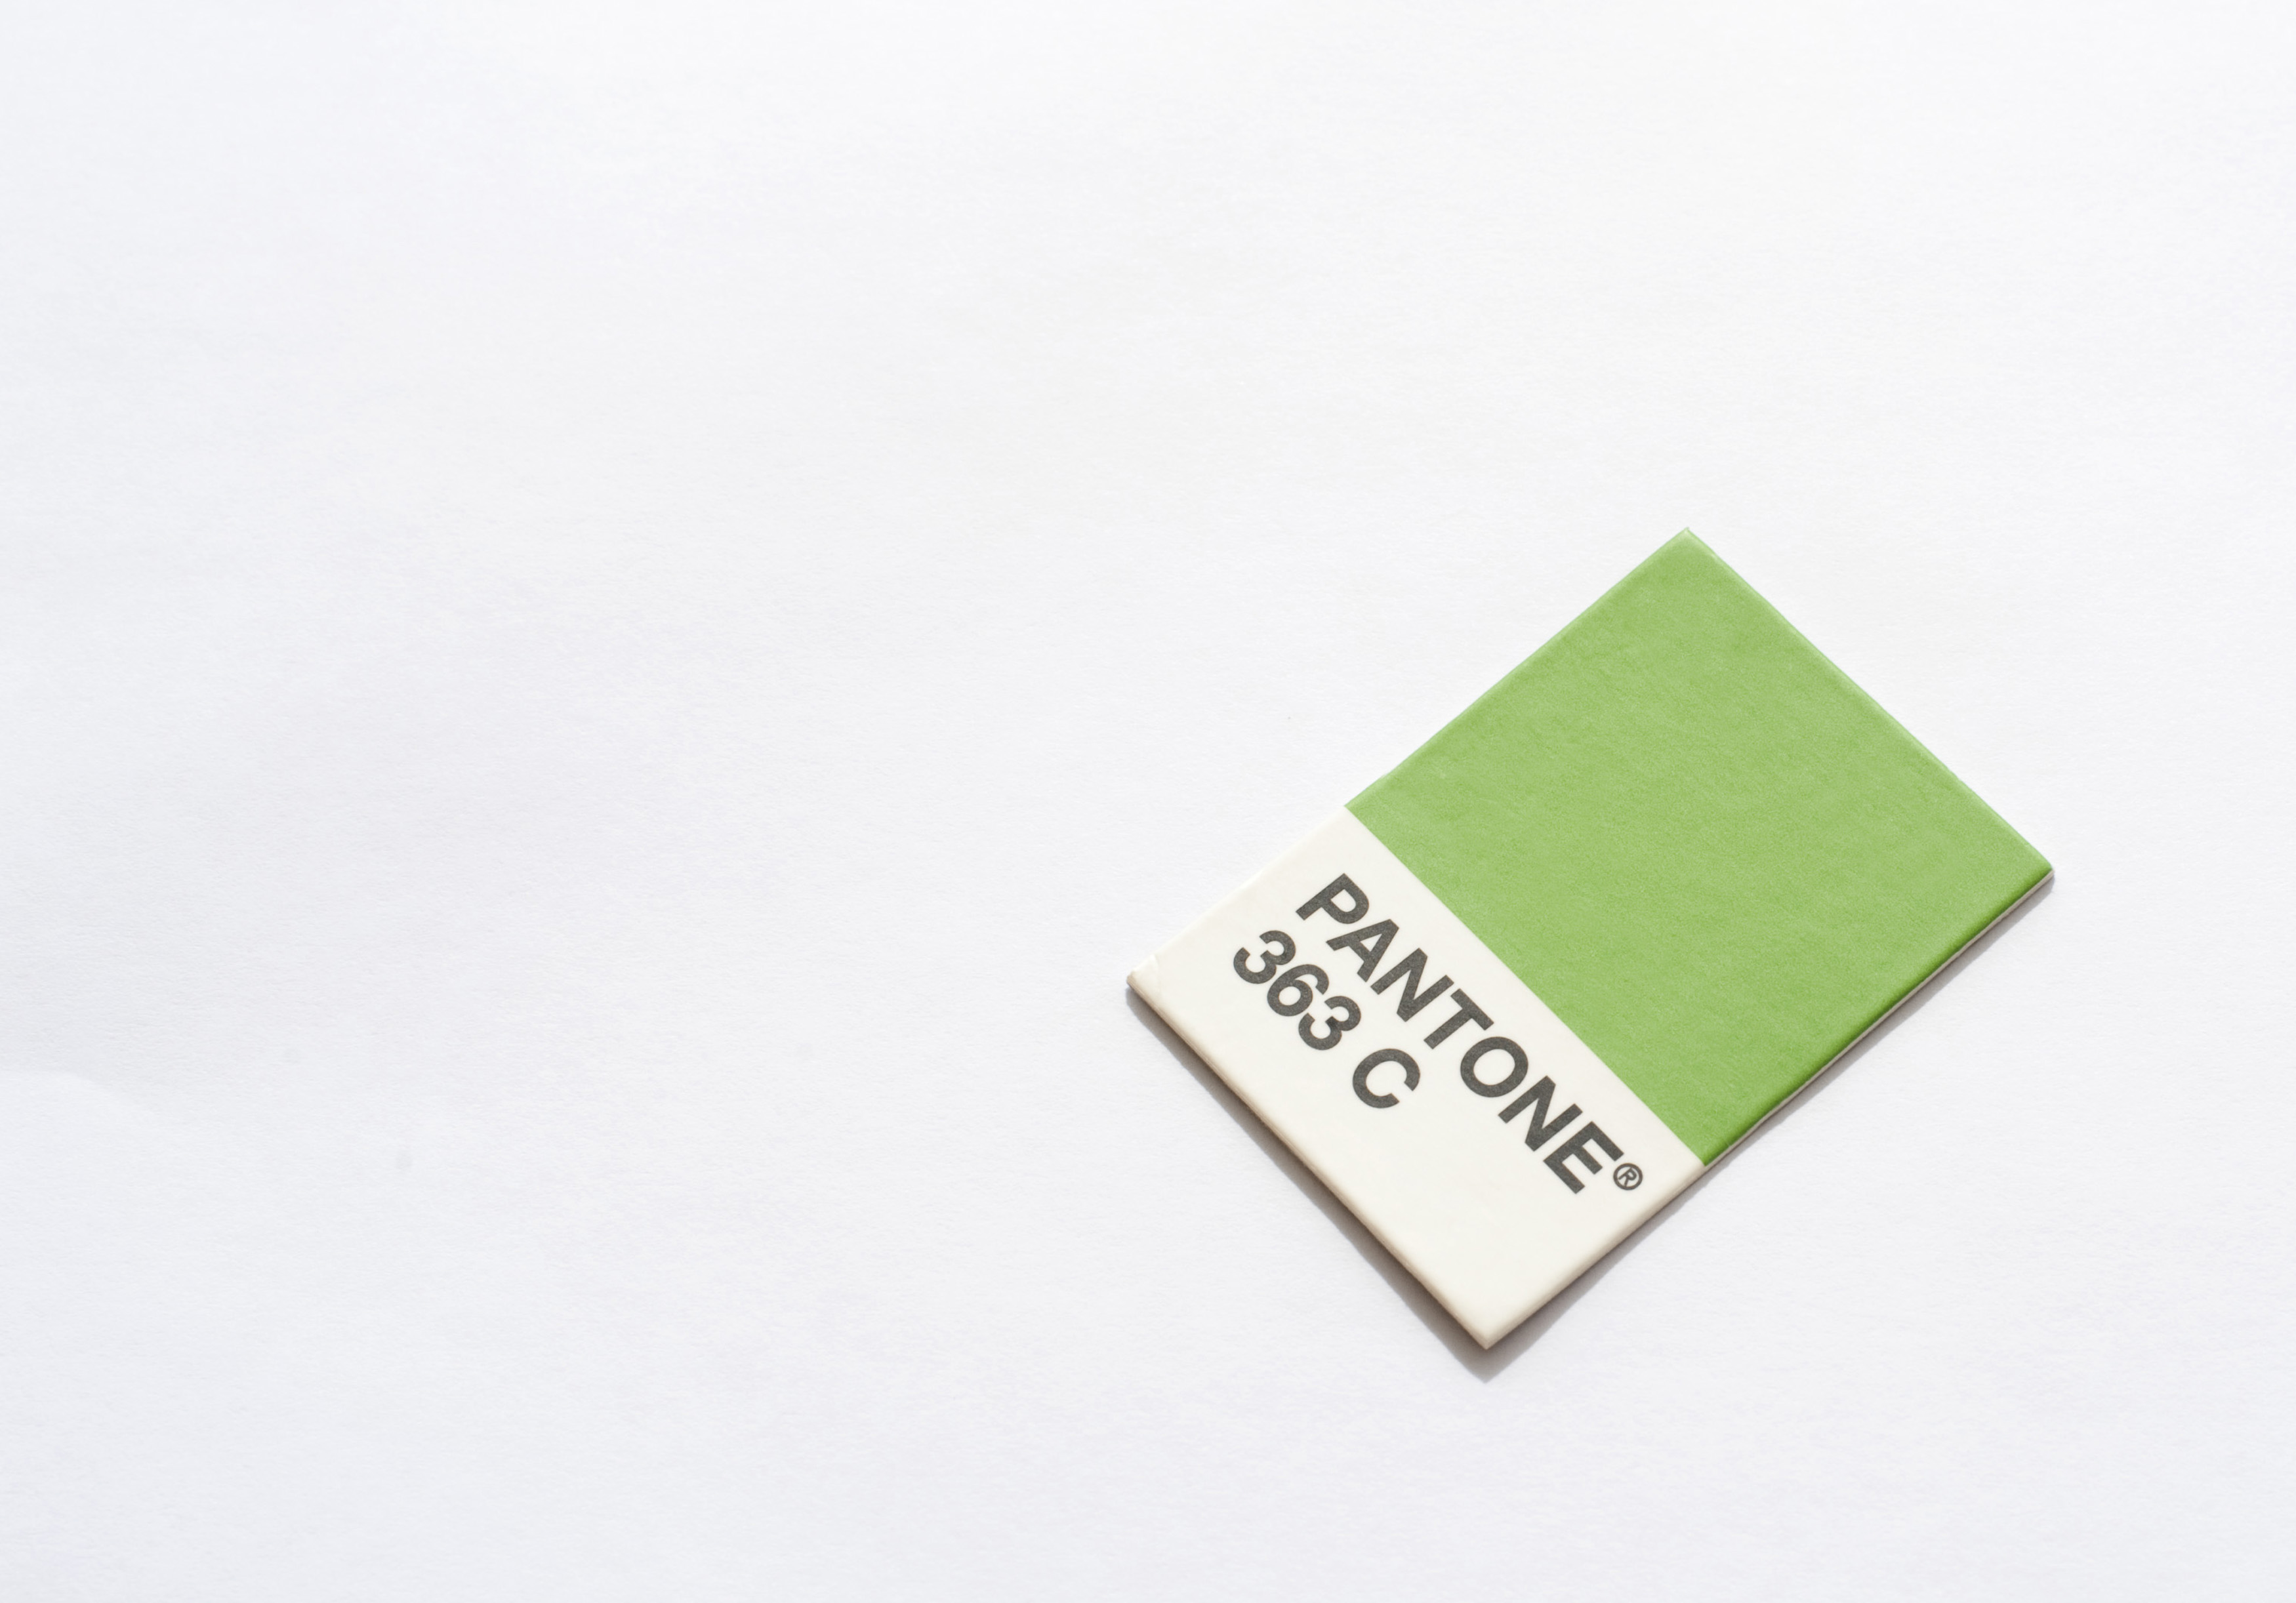 Pantone green color swatch 363 C. the pantone system is used to allow designers to match printed colours precisely